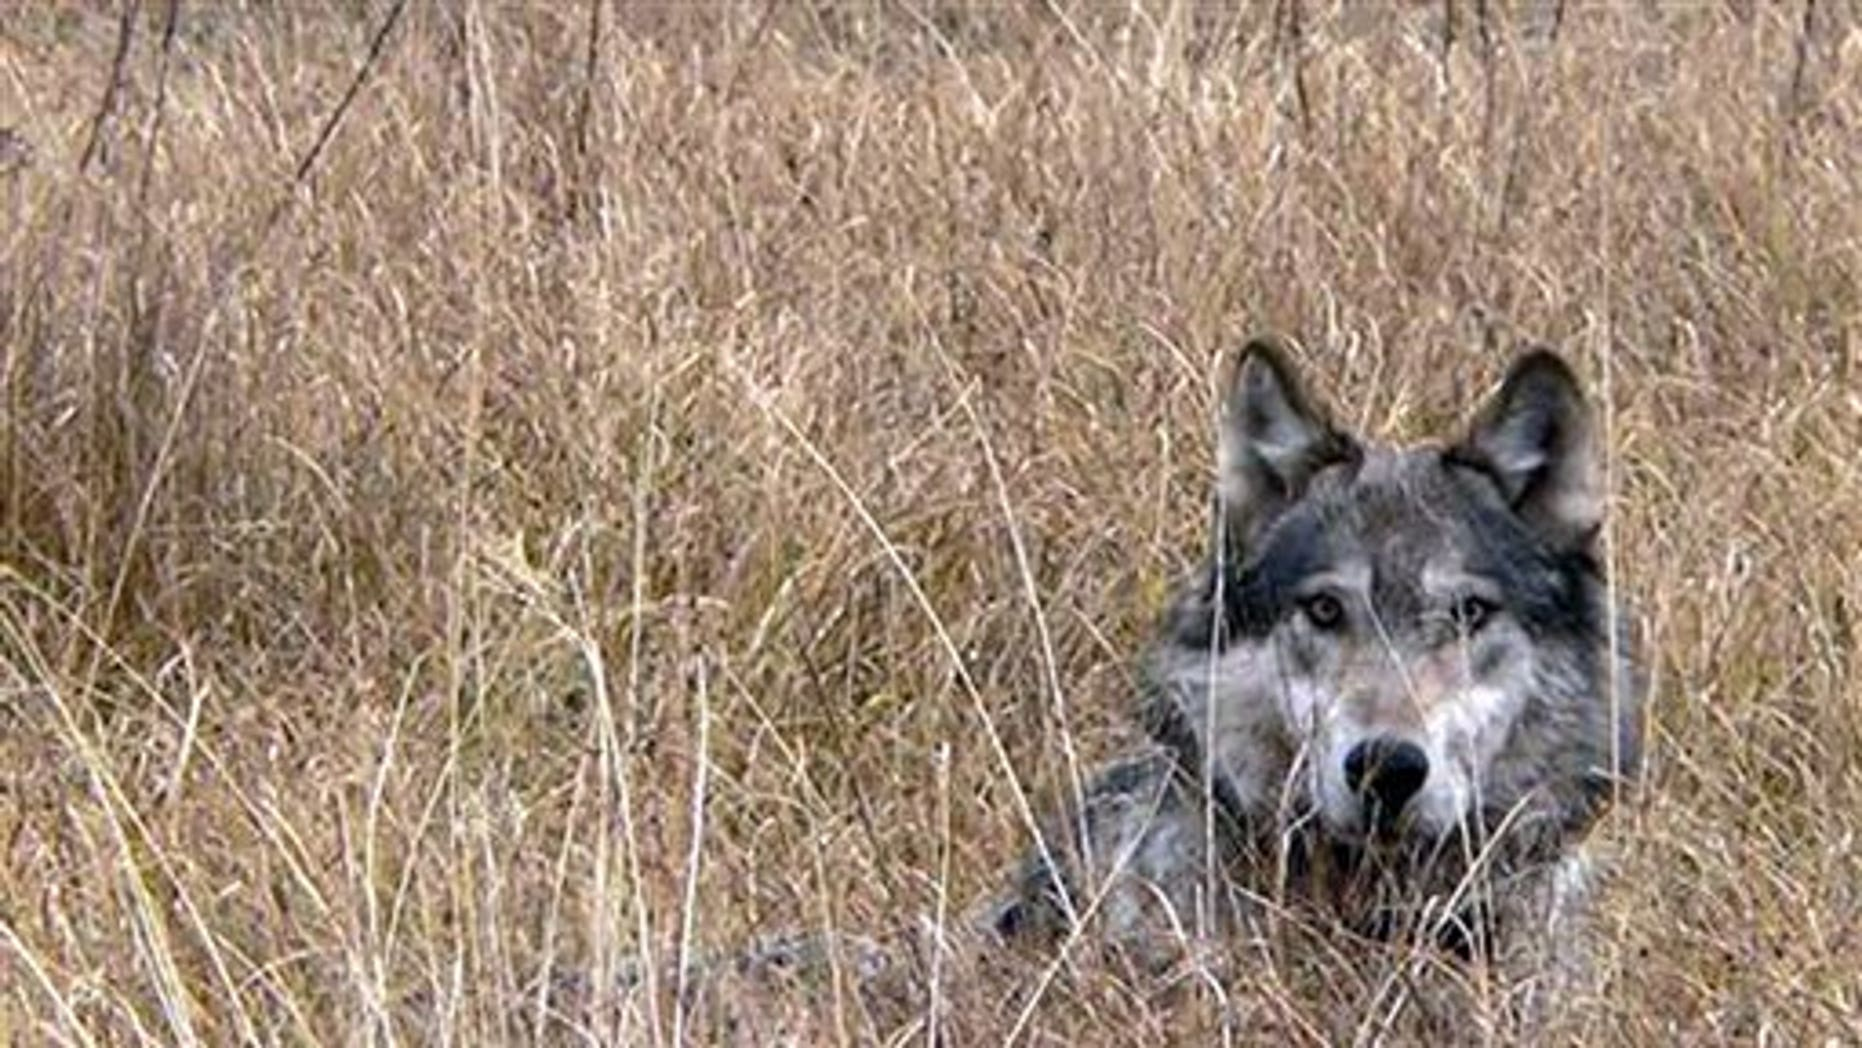 This undated image provided by Montana Fish Wildlife and Parks shows a wolf in Montana. (AP/Montana Fish Wildlife and Parks)